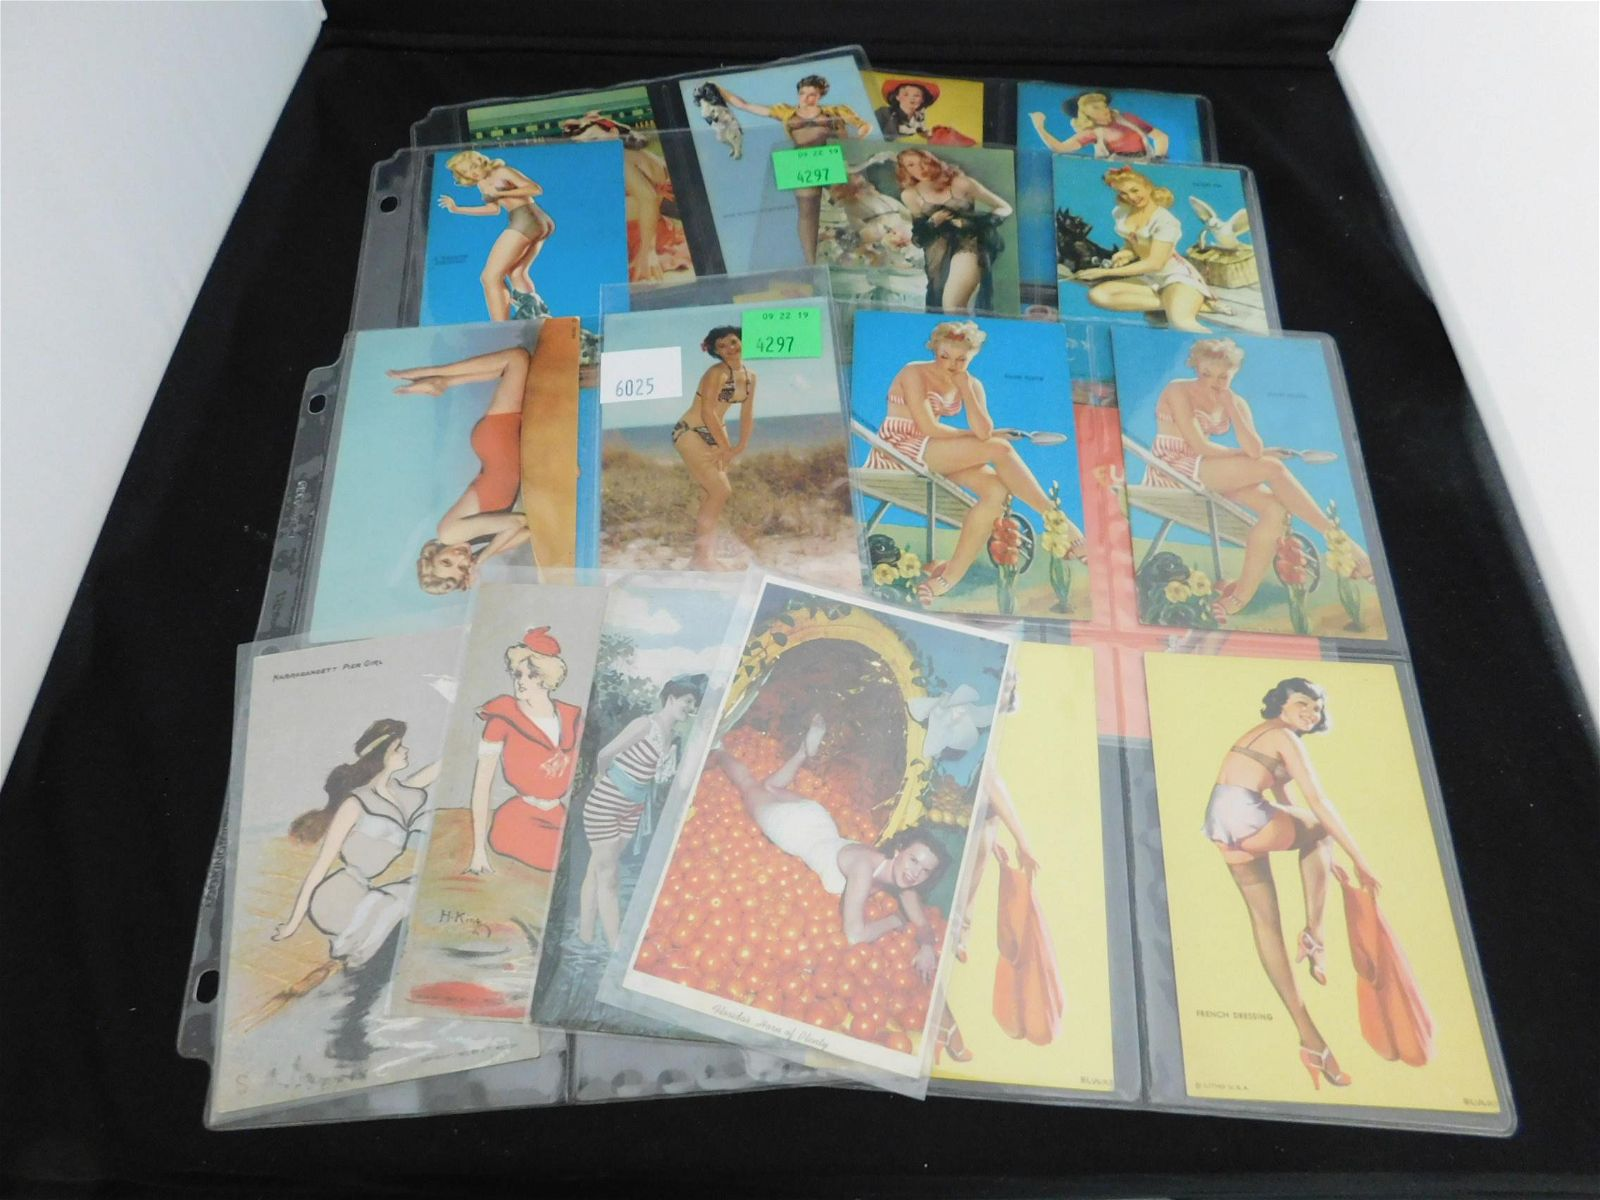 Lot Arcade Litho Pin Up, French & Naughty Postcard